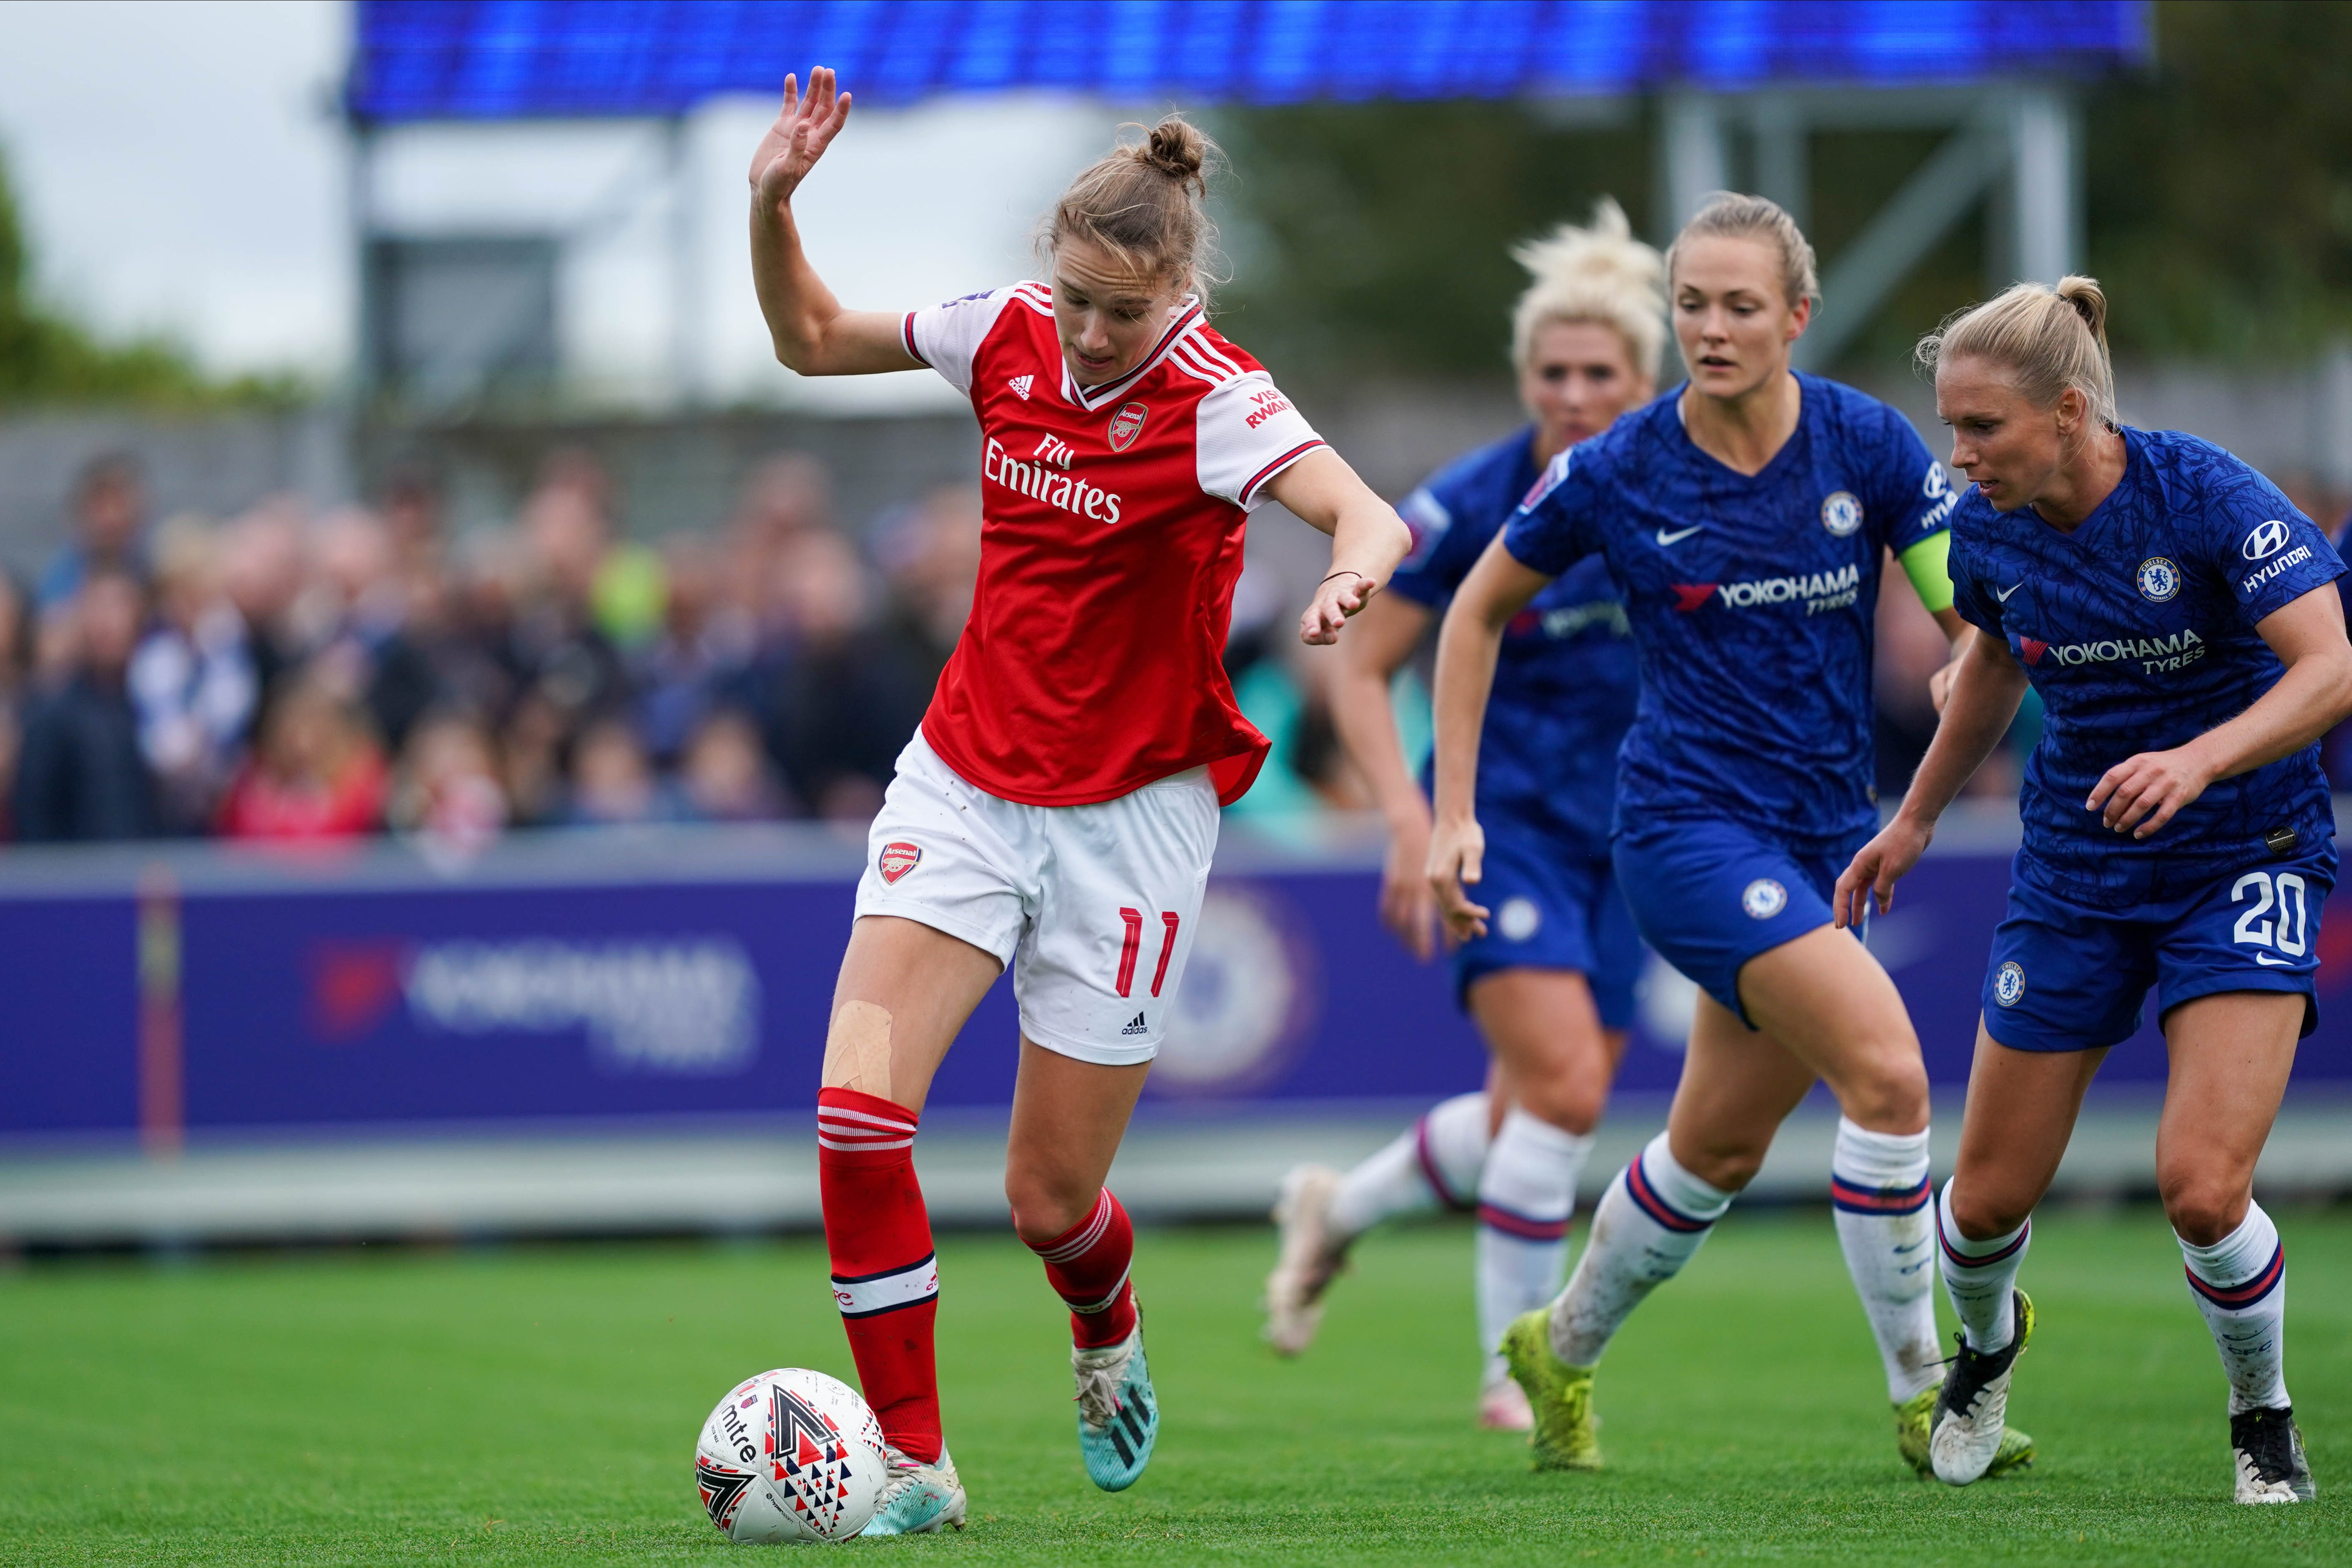 Women's Super League preview: Arsenal and Chelsea meet in seismic battle in title race as Bristol City and Liverpool look for vital win in crunch relegation clash